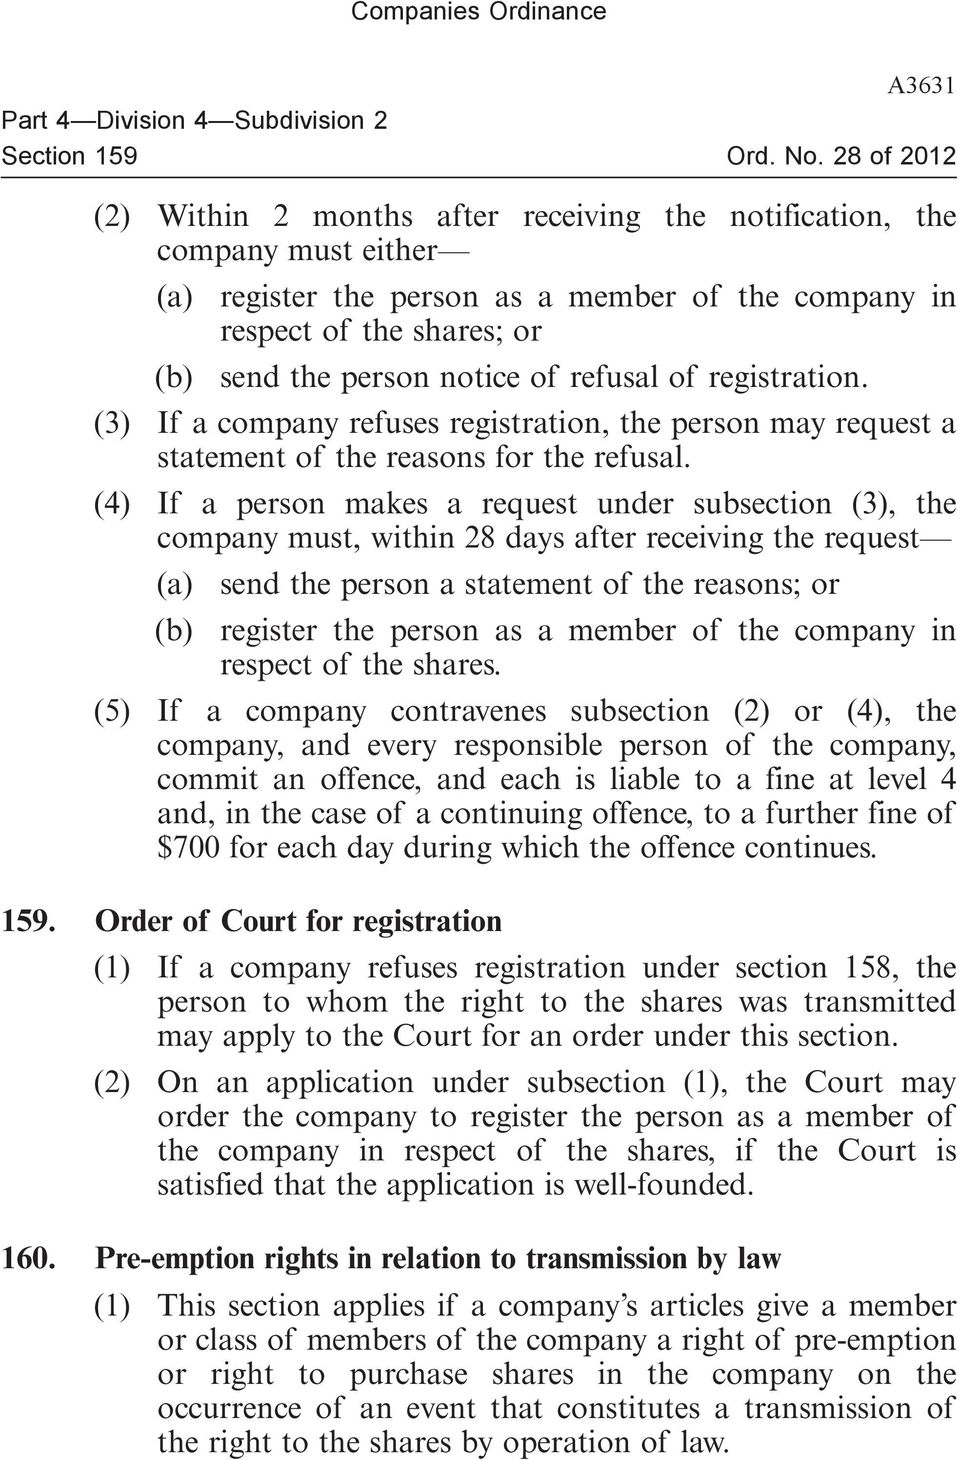 (4) If a person makes a request under subsection (3), the company must, within 28 days after receiving the request (a) send the person a statement of the reasons; or (b) register the person as a